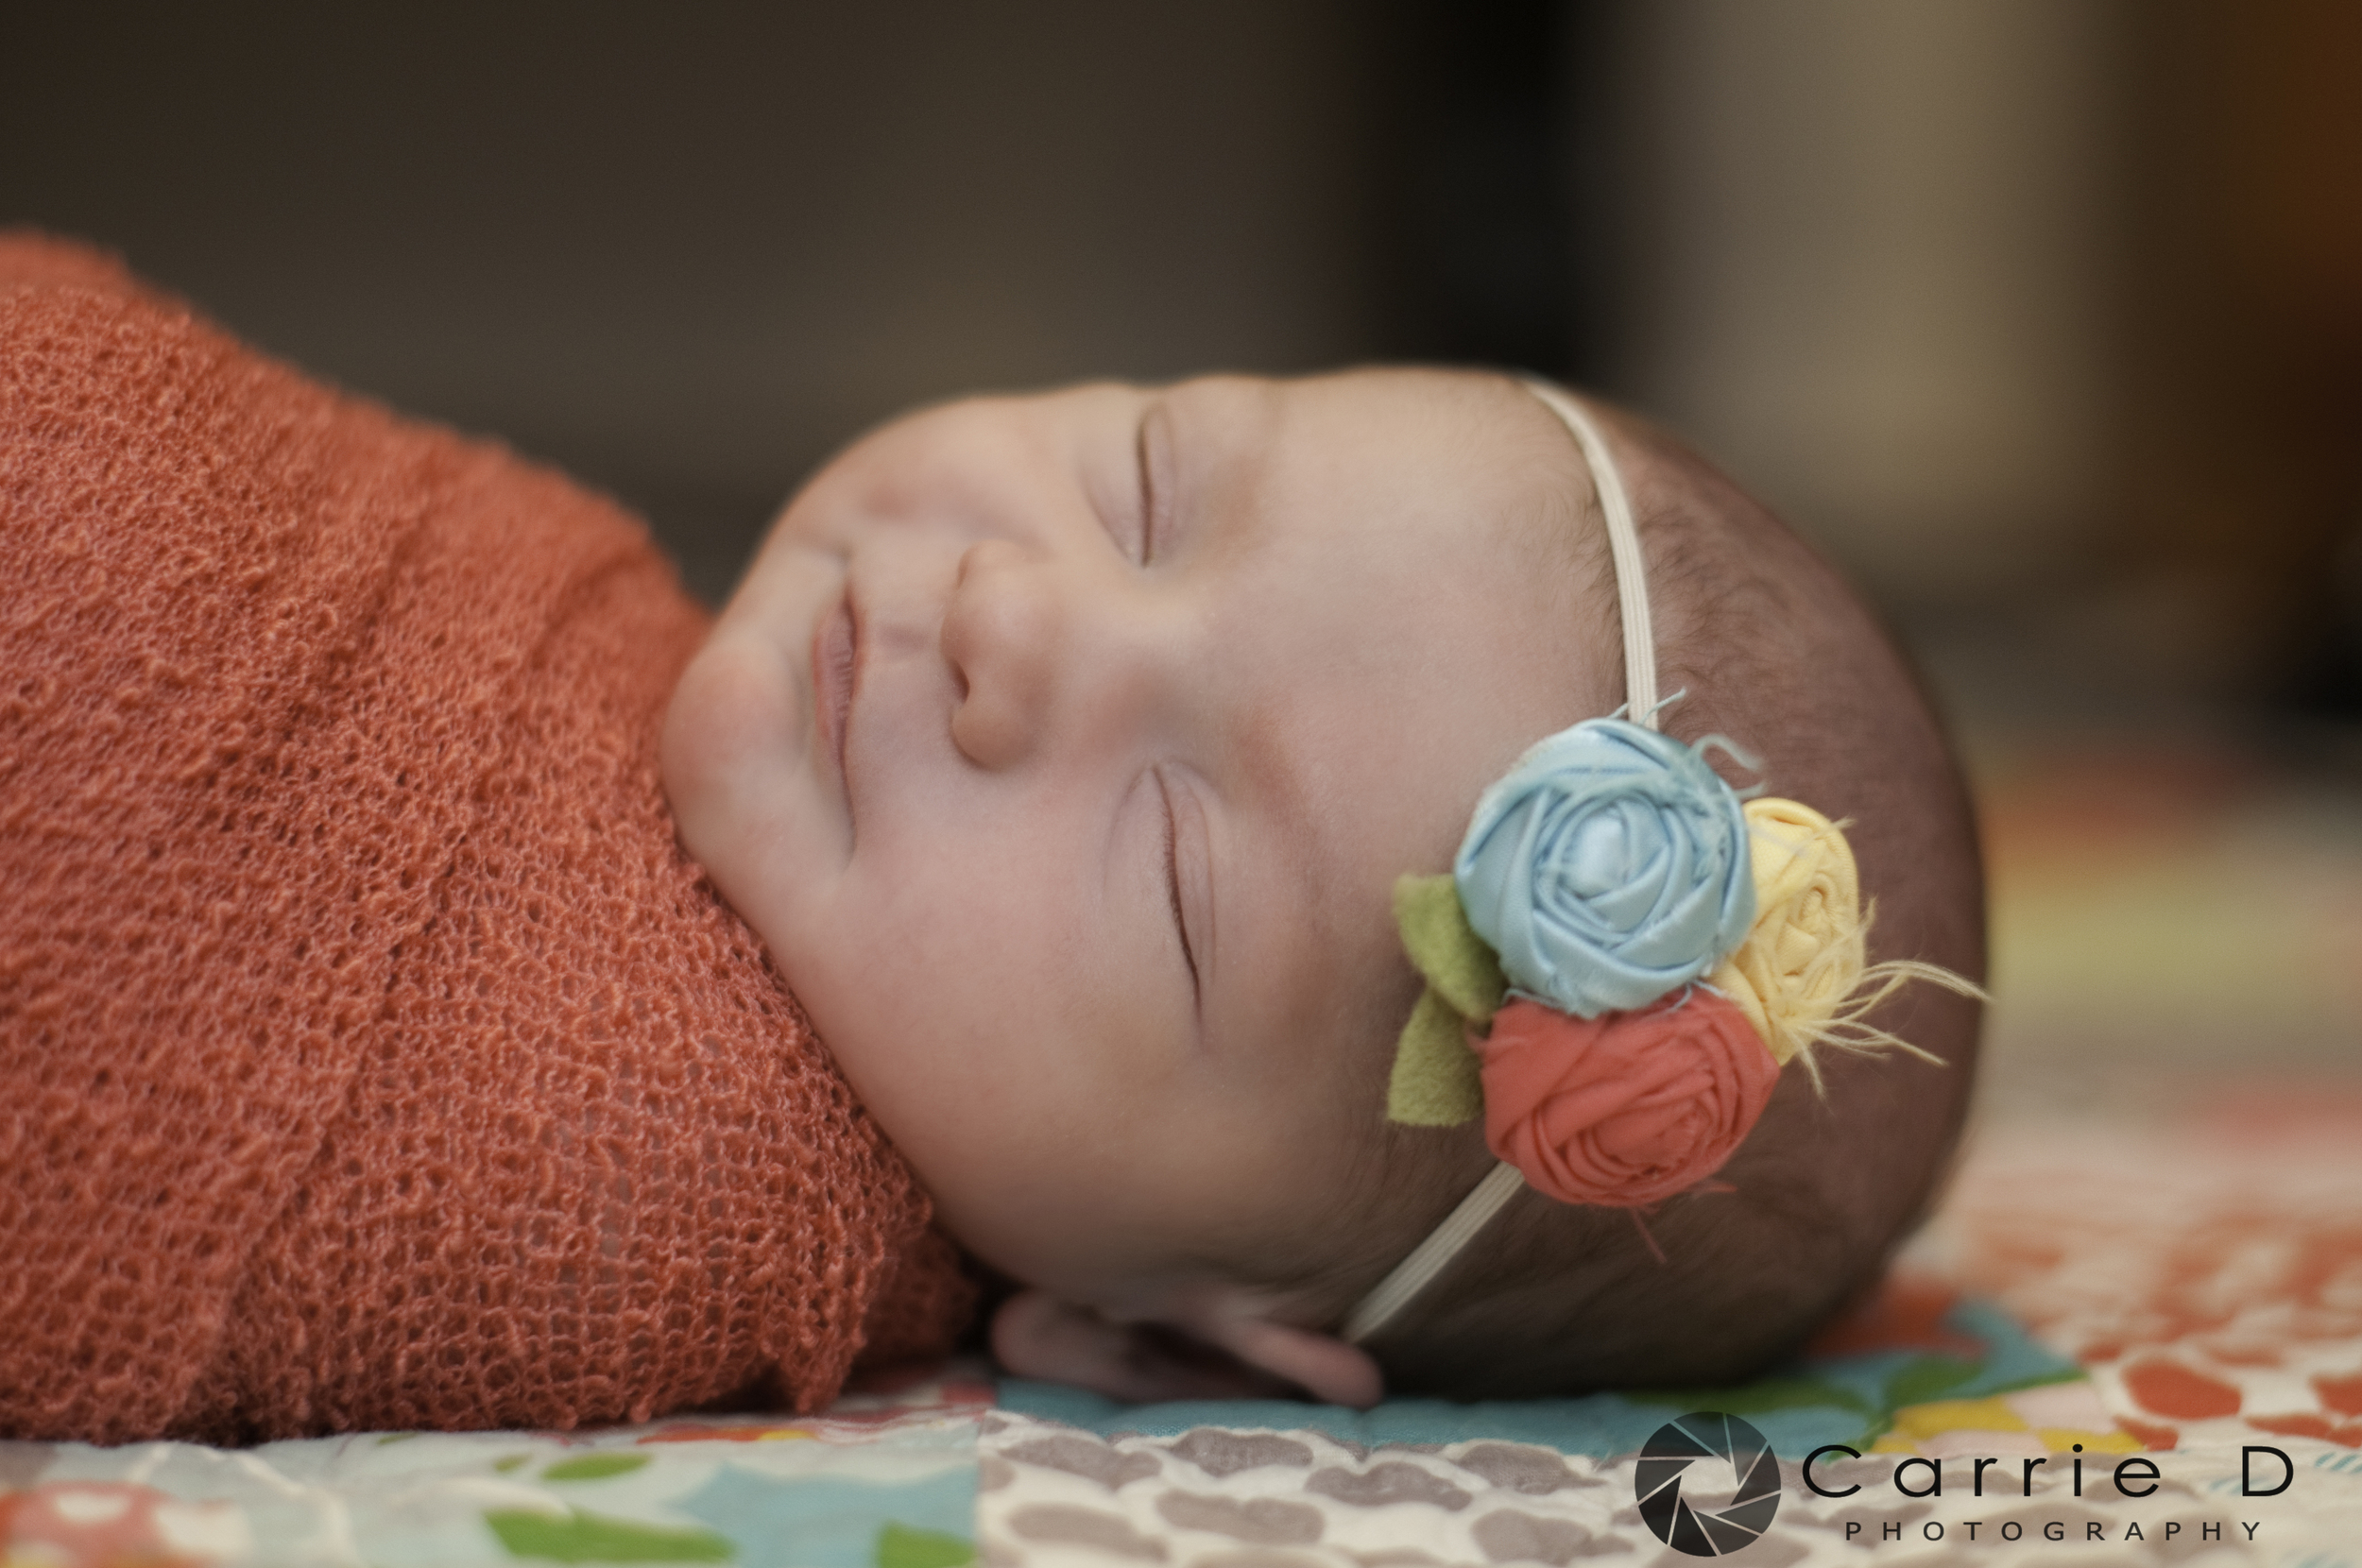 Annapolis Newborn Photographer - Annapolis Natural Light Photographer - Natural Light Newborn Photography - Natural Light Photographer - Maryland Newborn Photographer - Newborn Photography - Baby in Crab Pot - Annapolis Natural Light Newborn Photographer - Annapolis Family Photographer